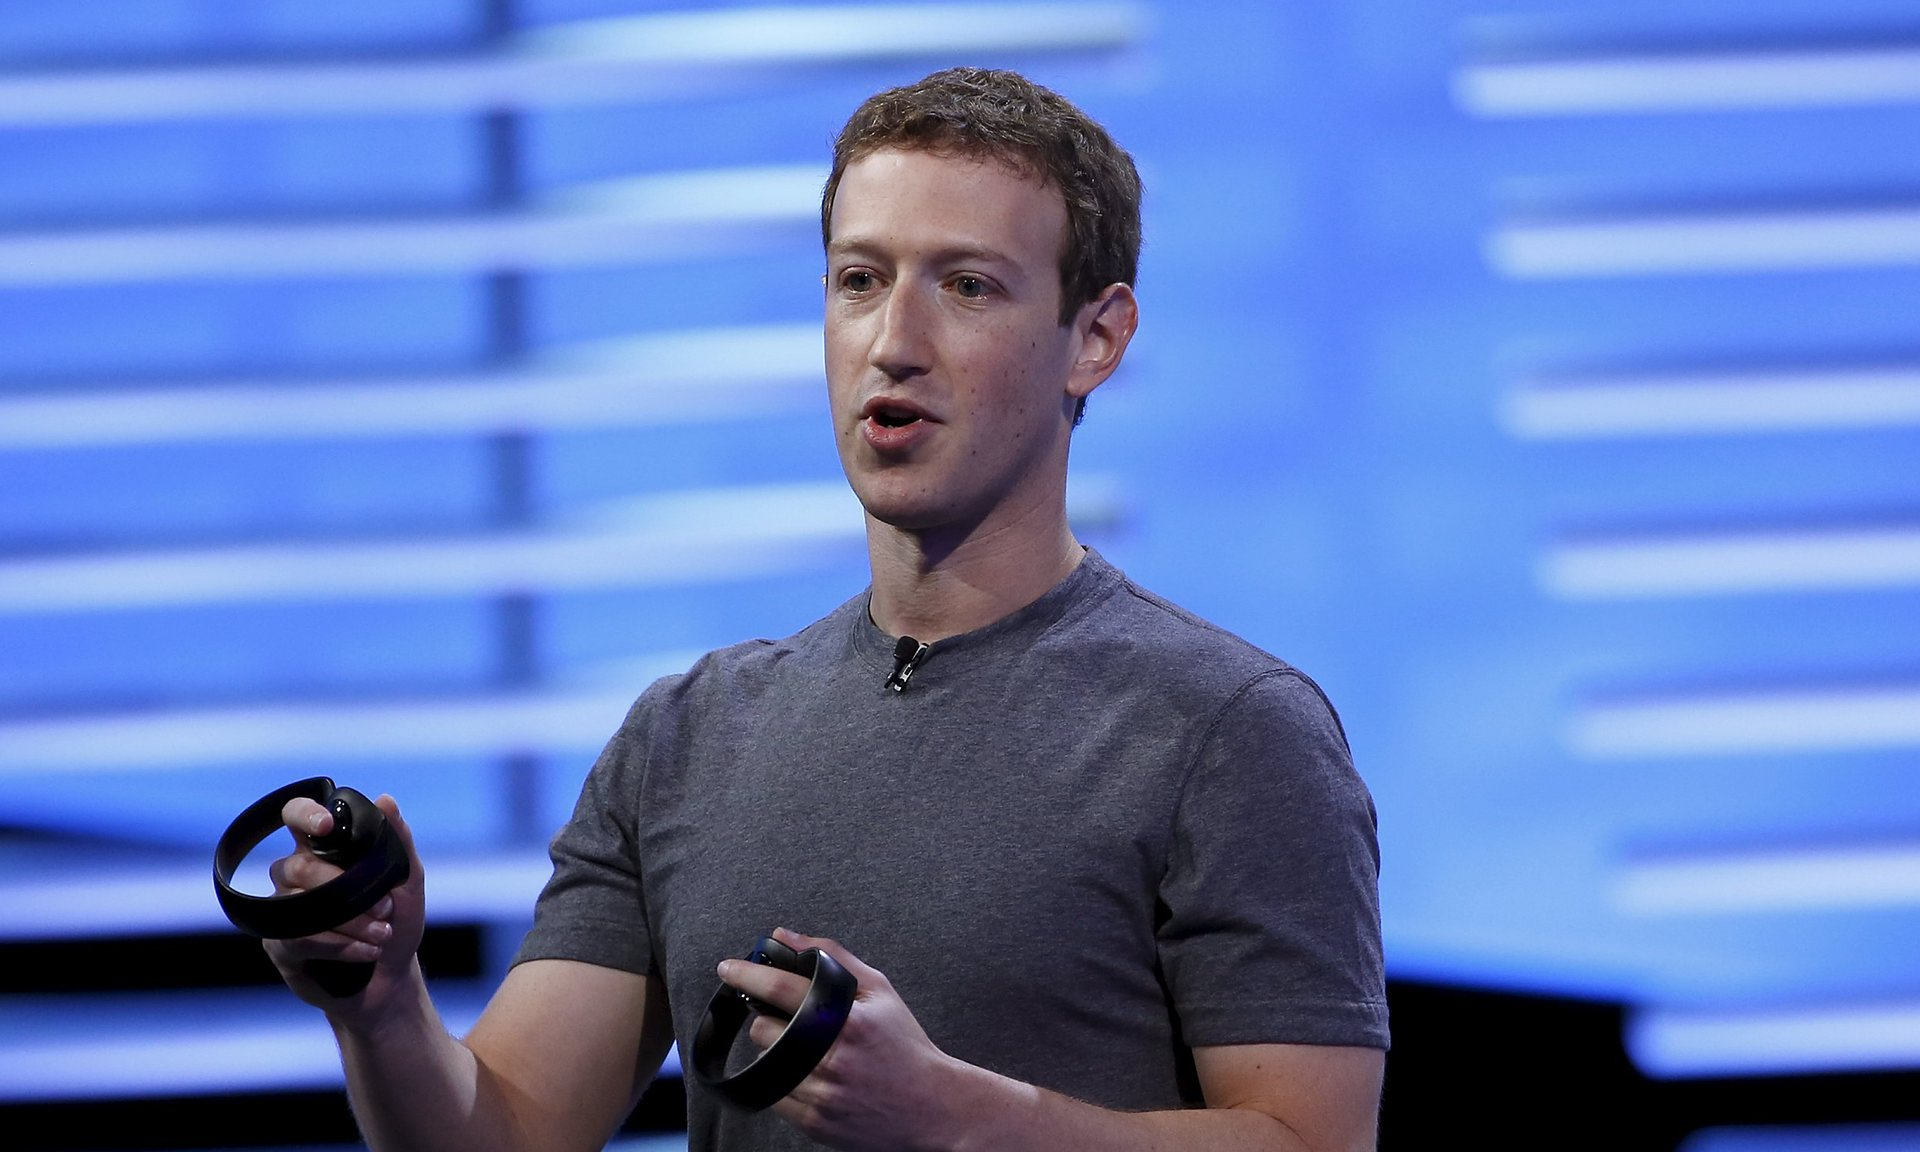 Mark Zuckerberg has refused to acknowledge that Facebook is a publisher. Photograph: Stephen Lam/Reuters